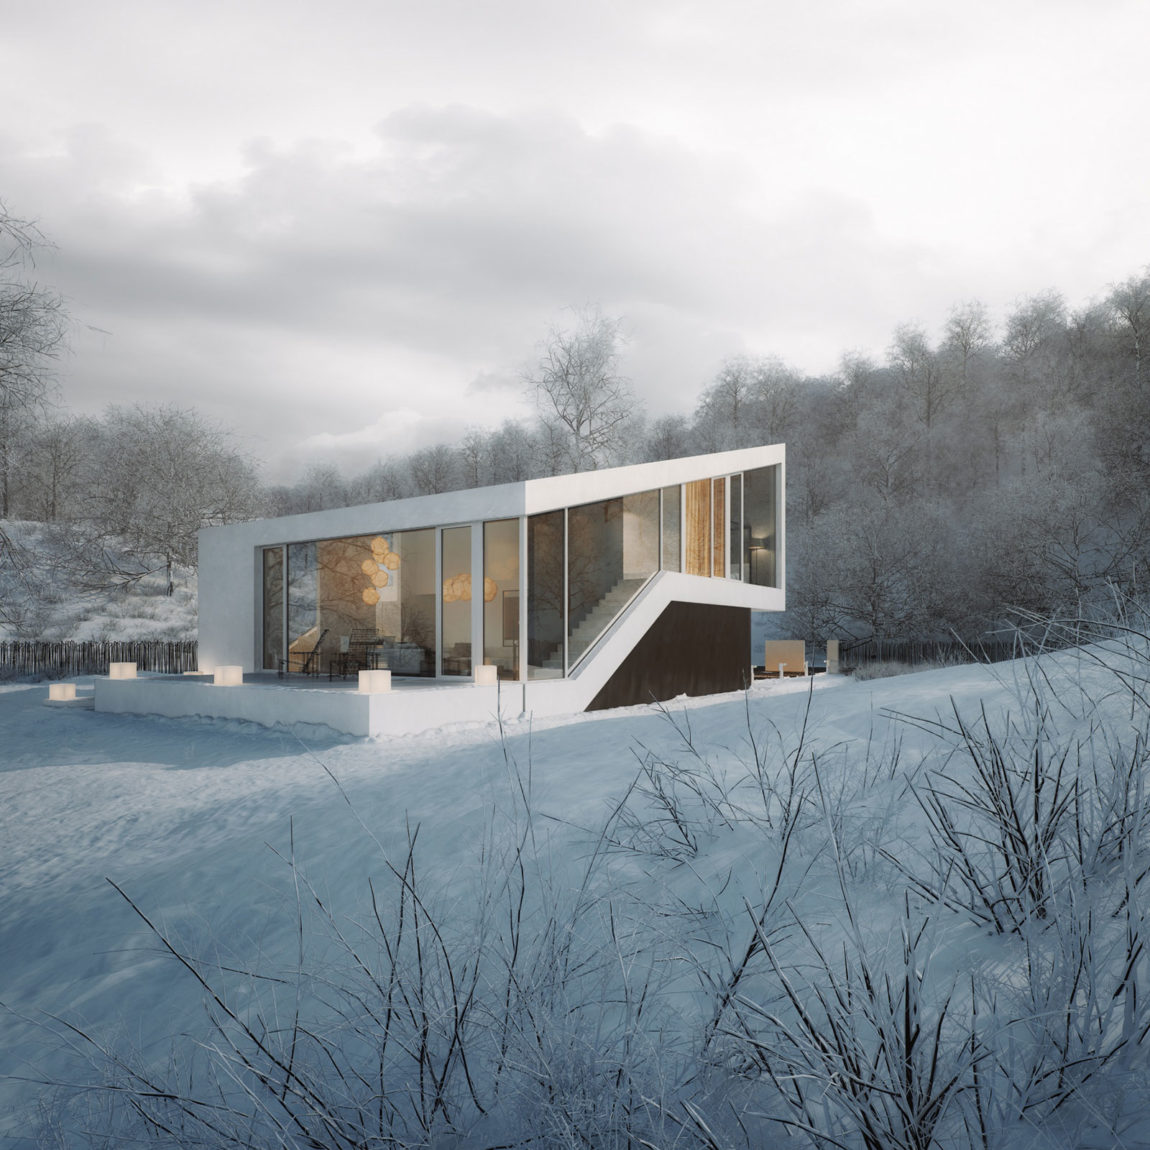 Slanted House by Michal Nowak (2)